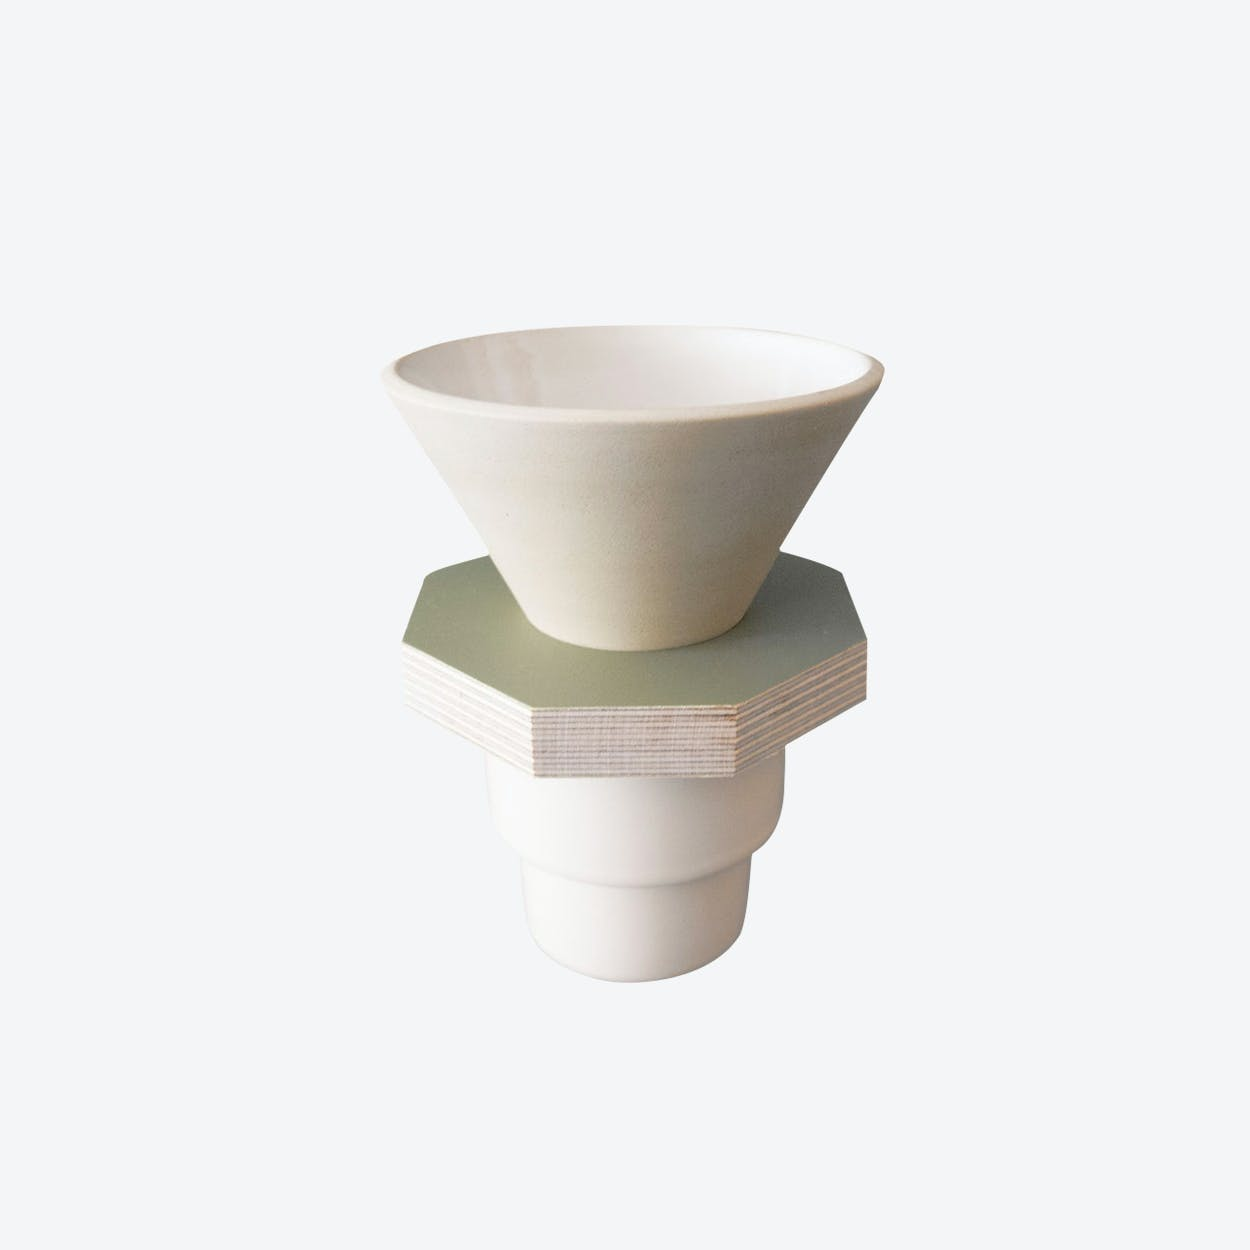 Ceramic Dripper in Beige and Green Plywood